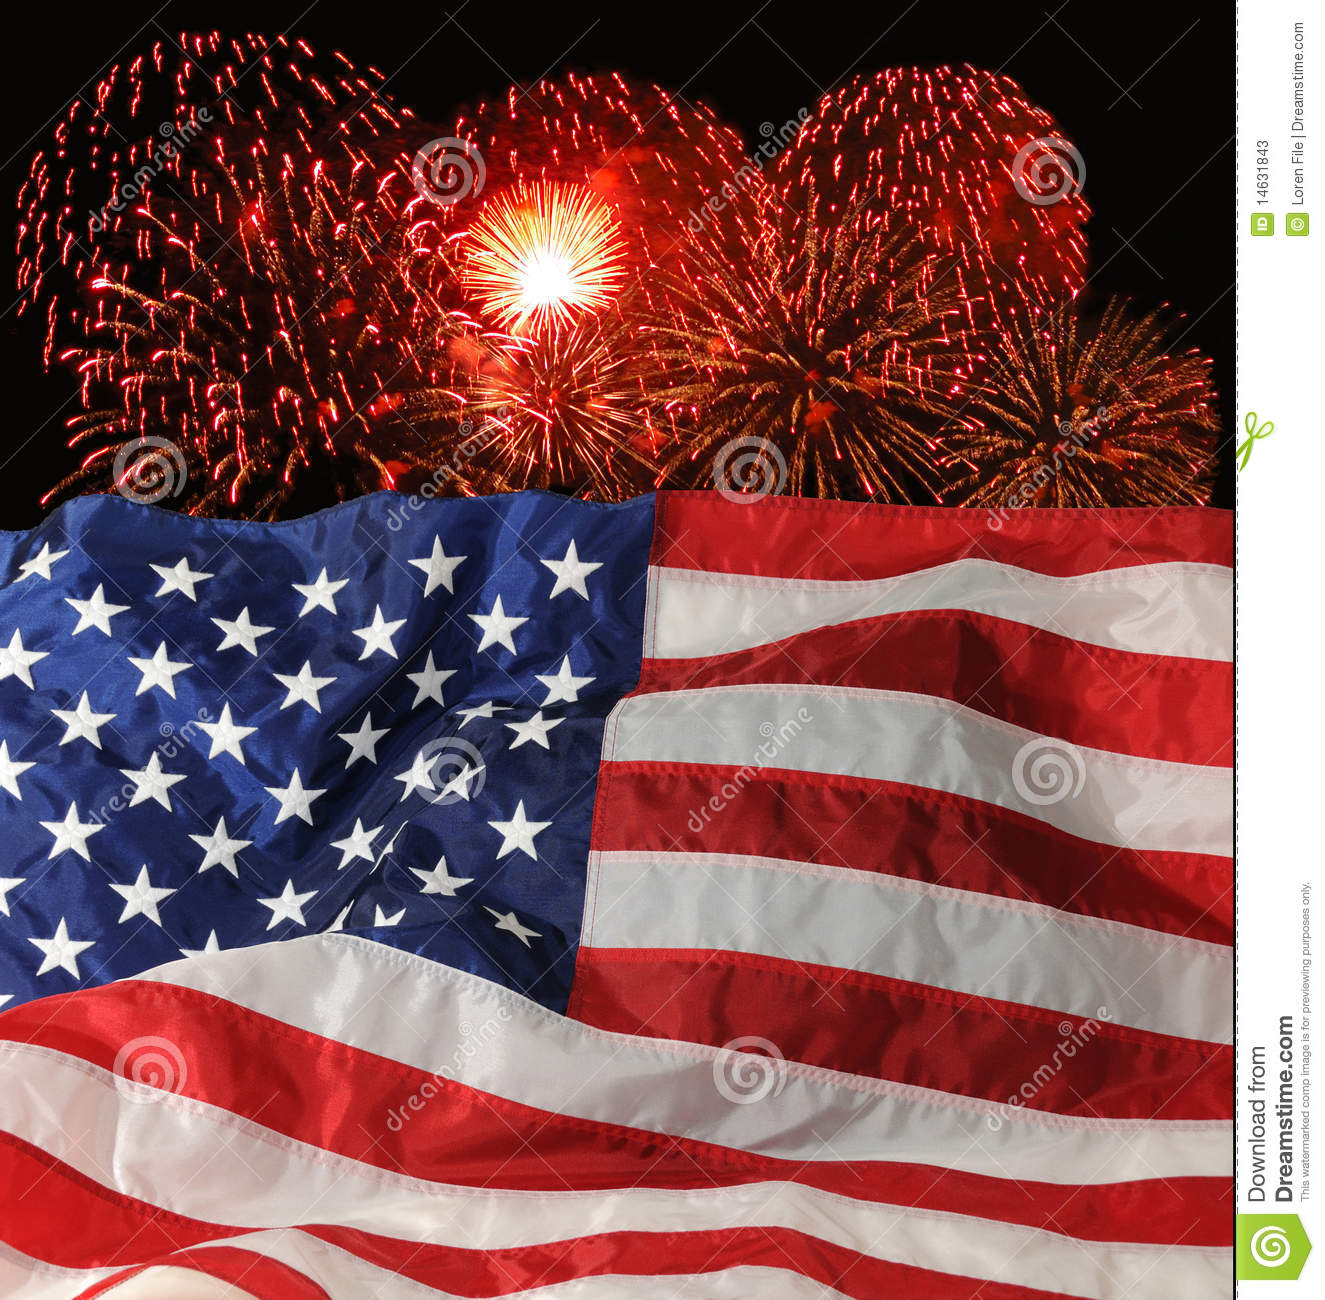 U.S. Indicateur et feux d artifice